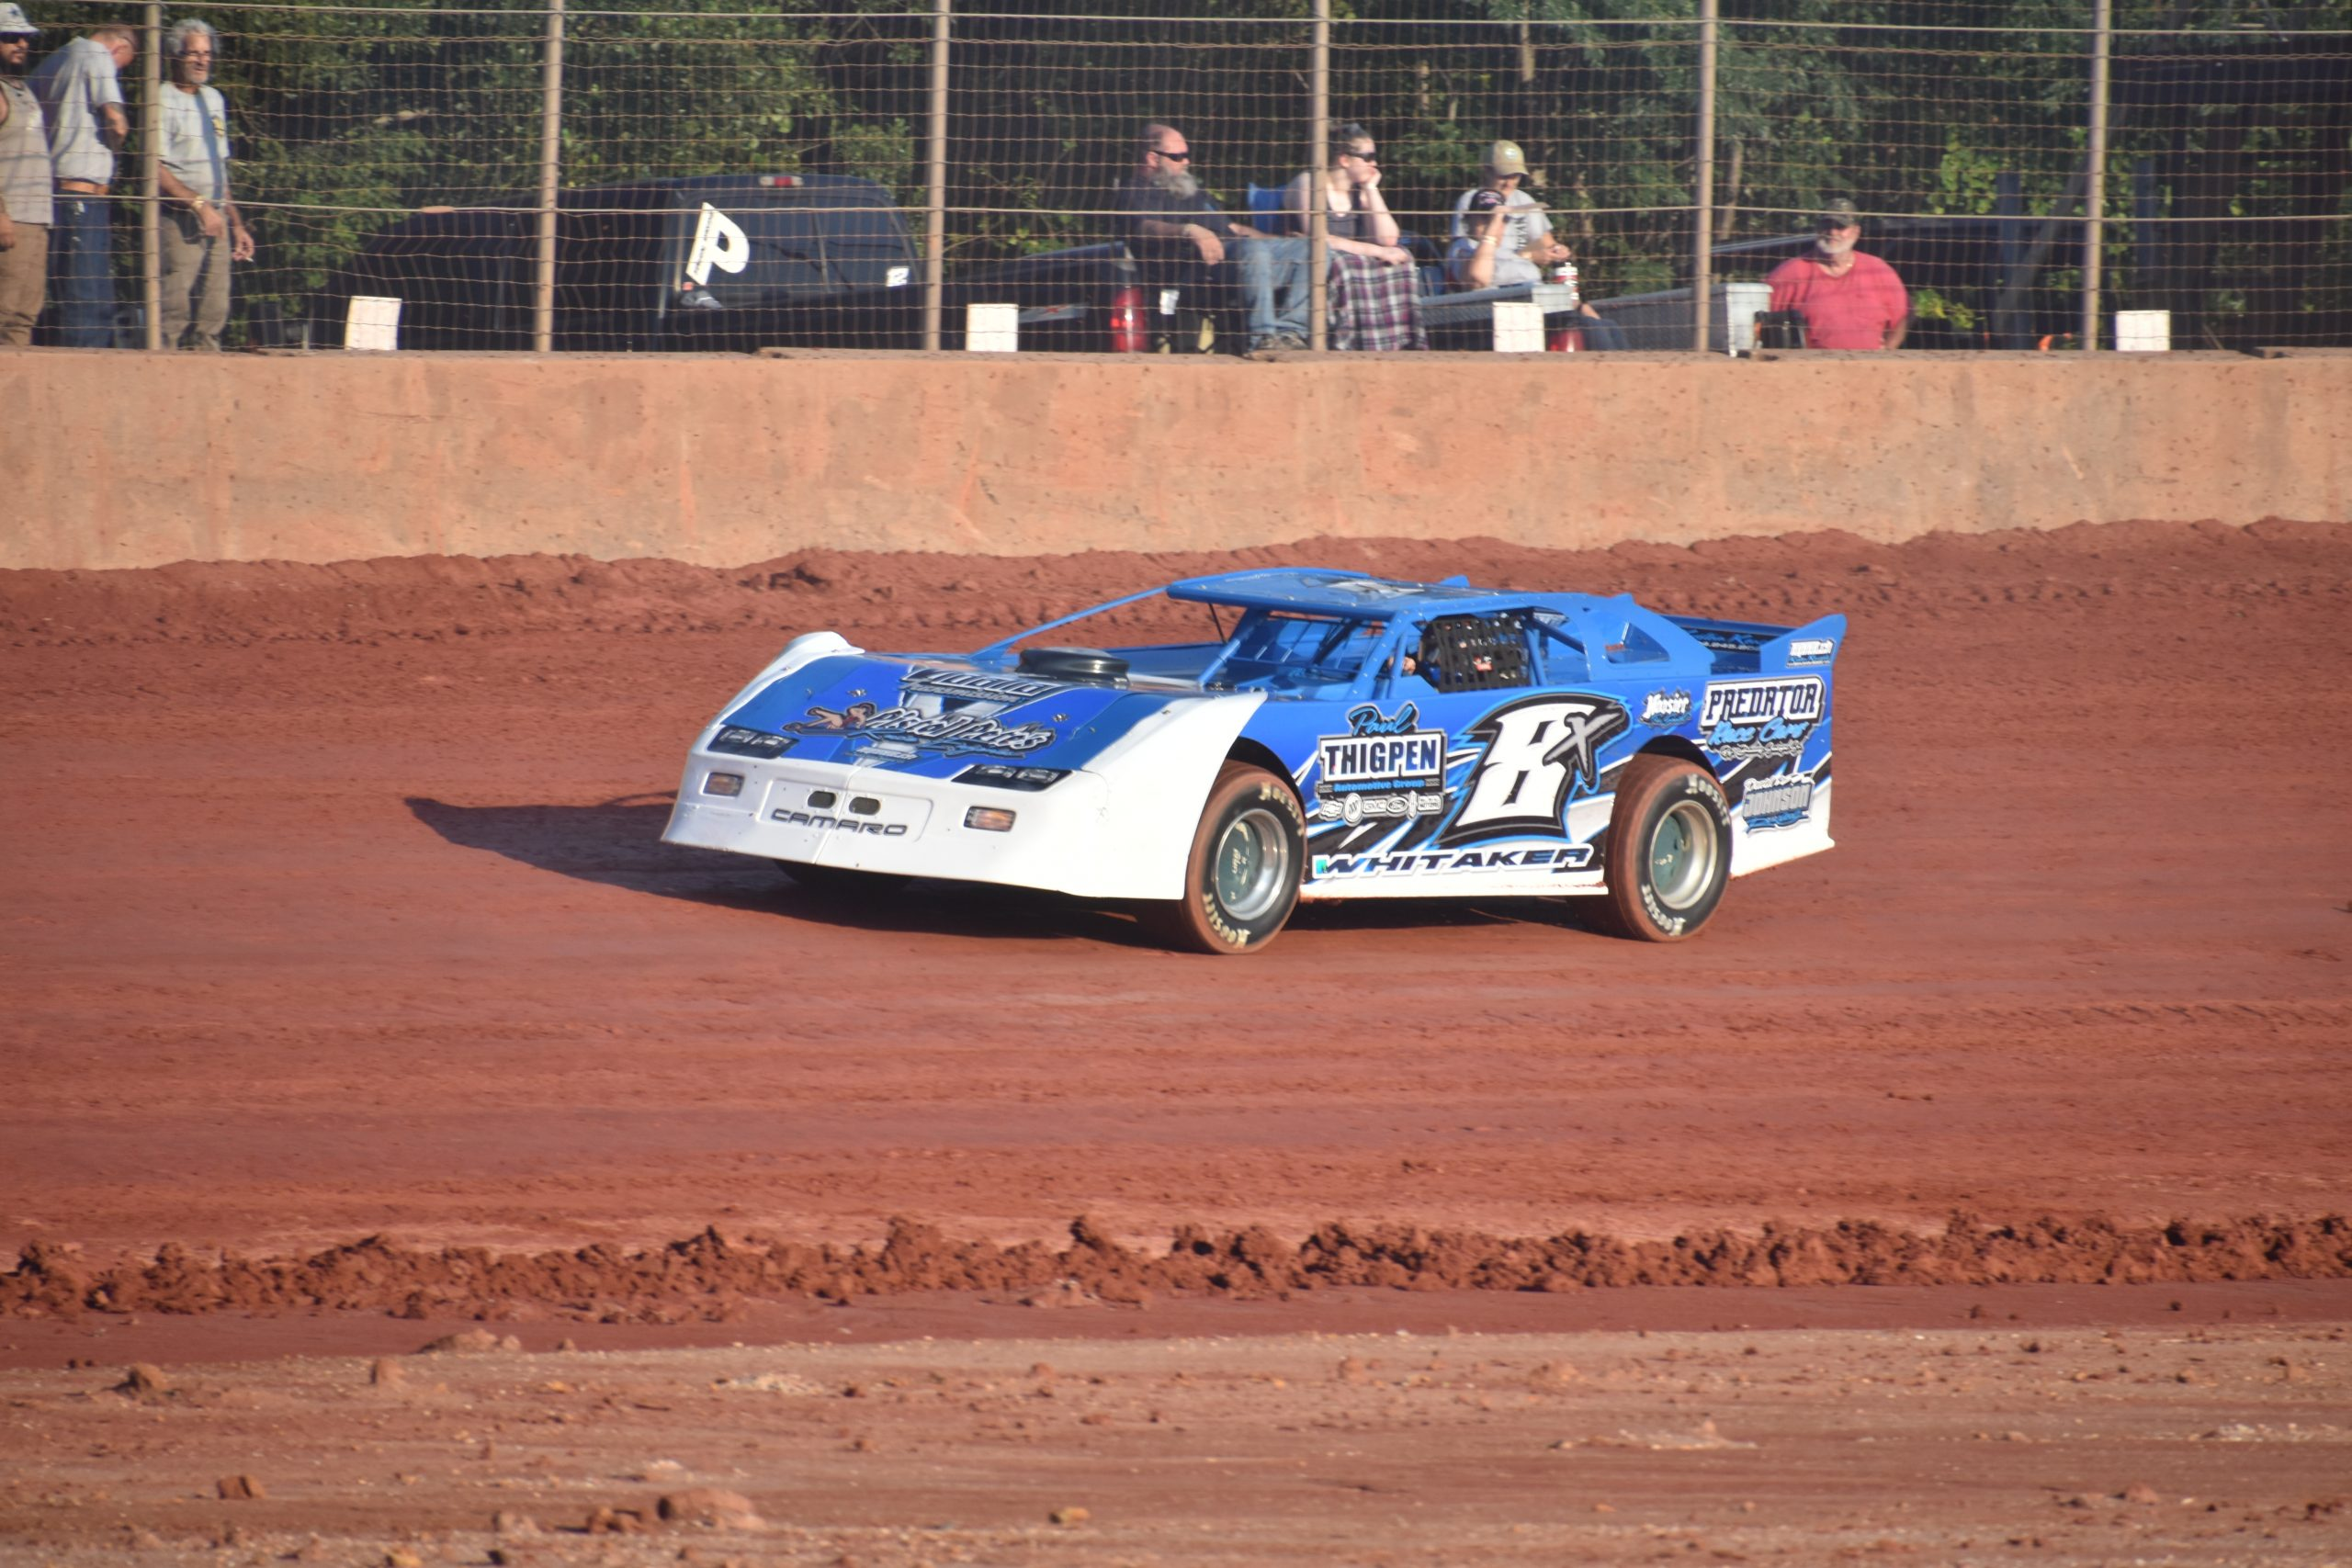 8-14-21 Morgan Sheffield Memorial Race